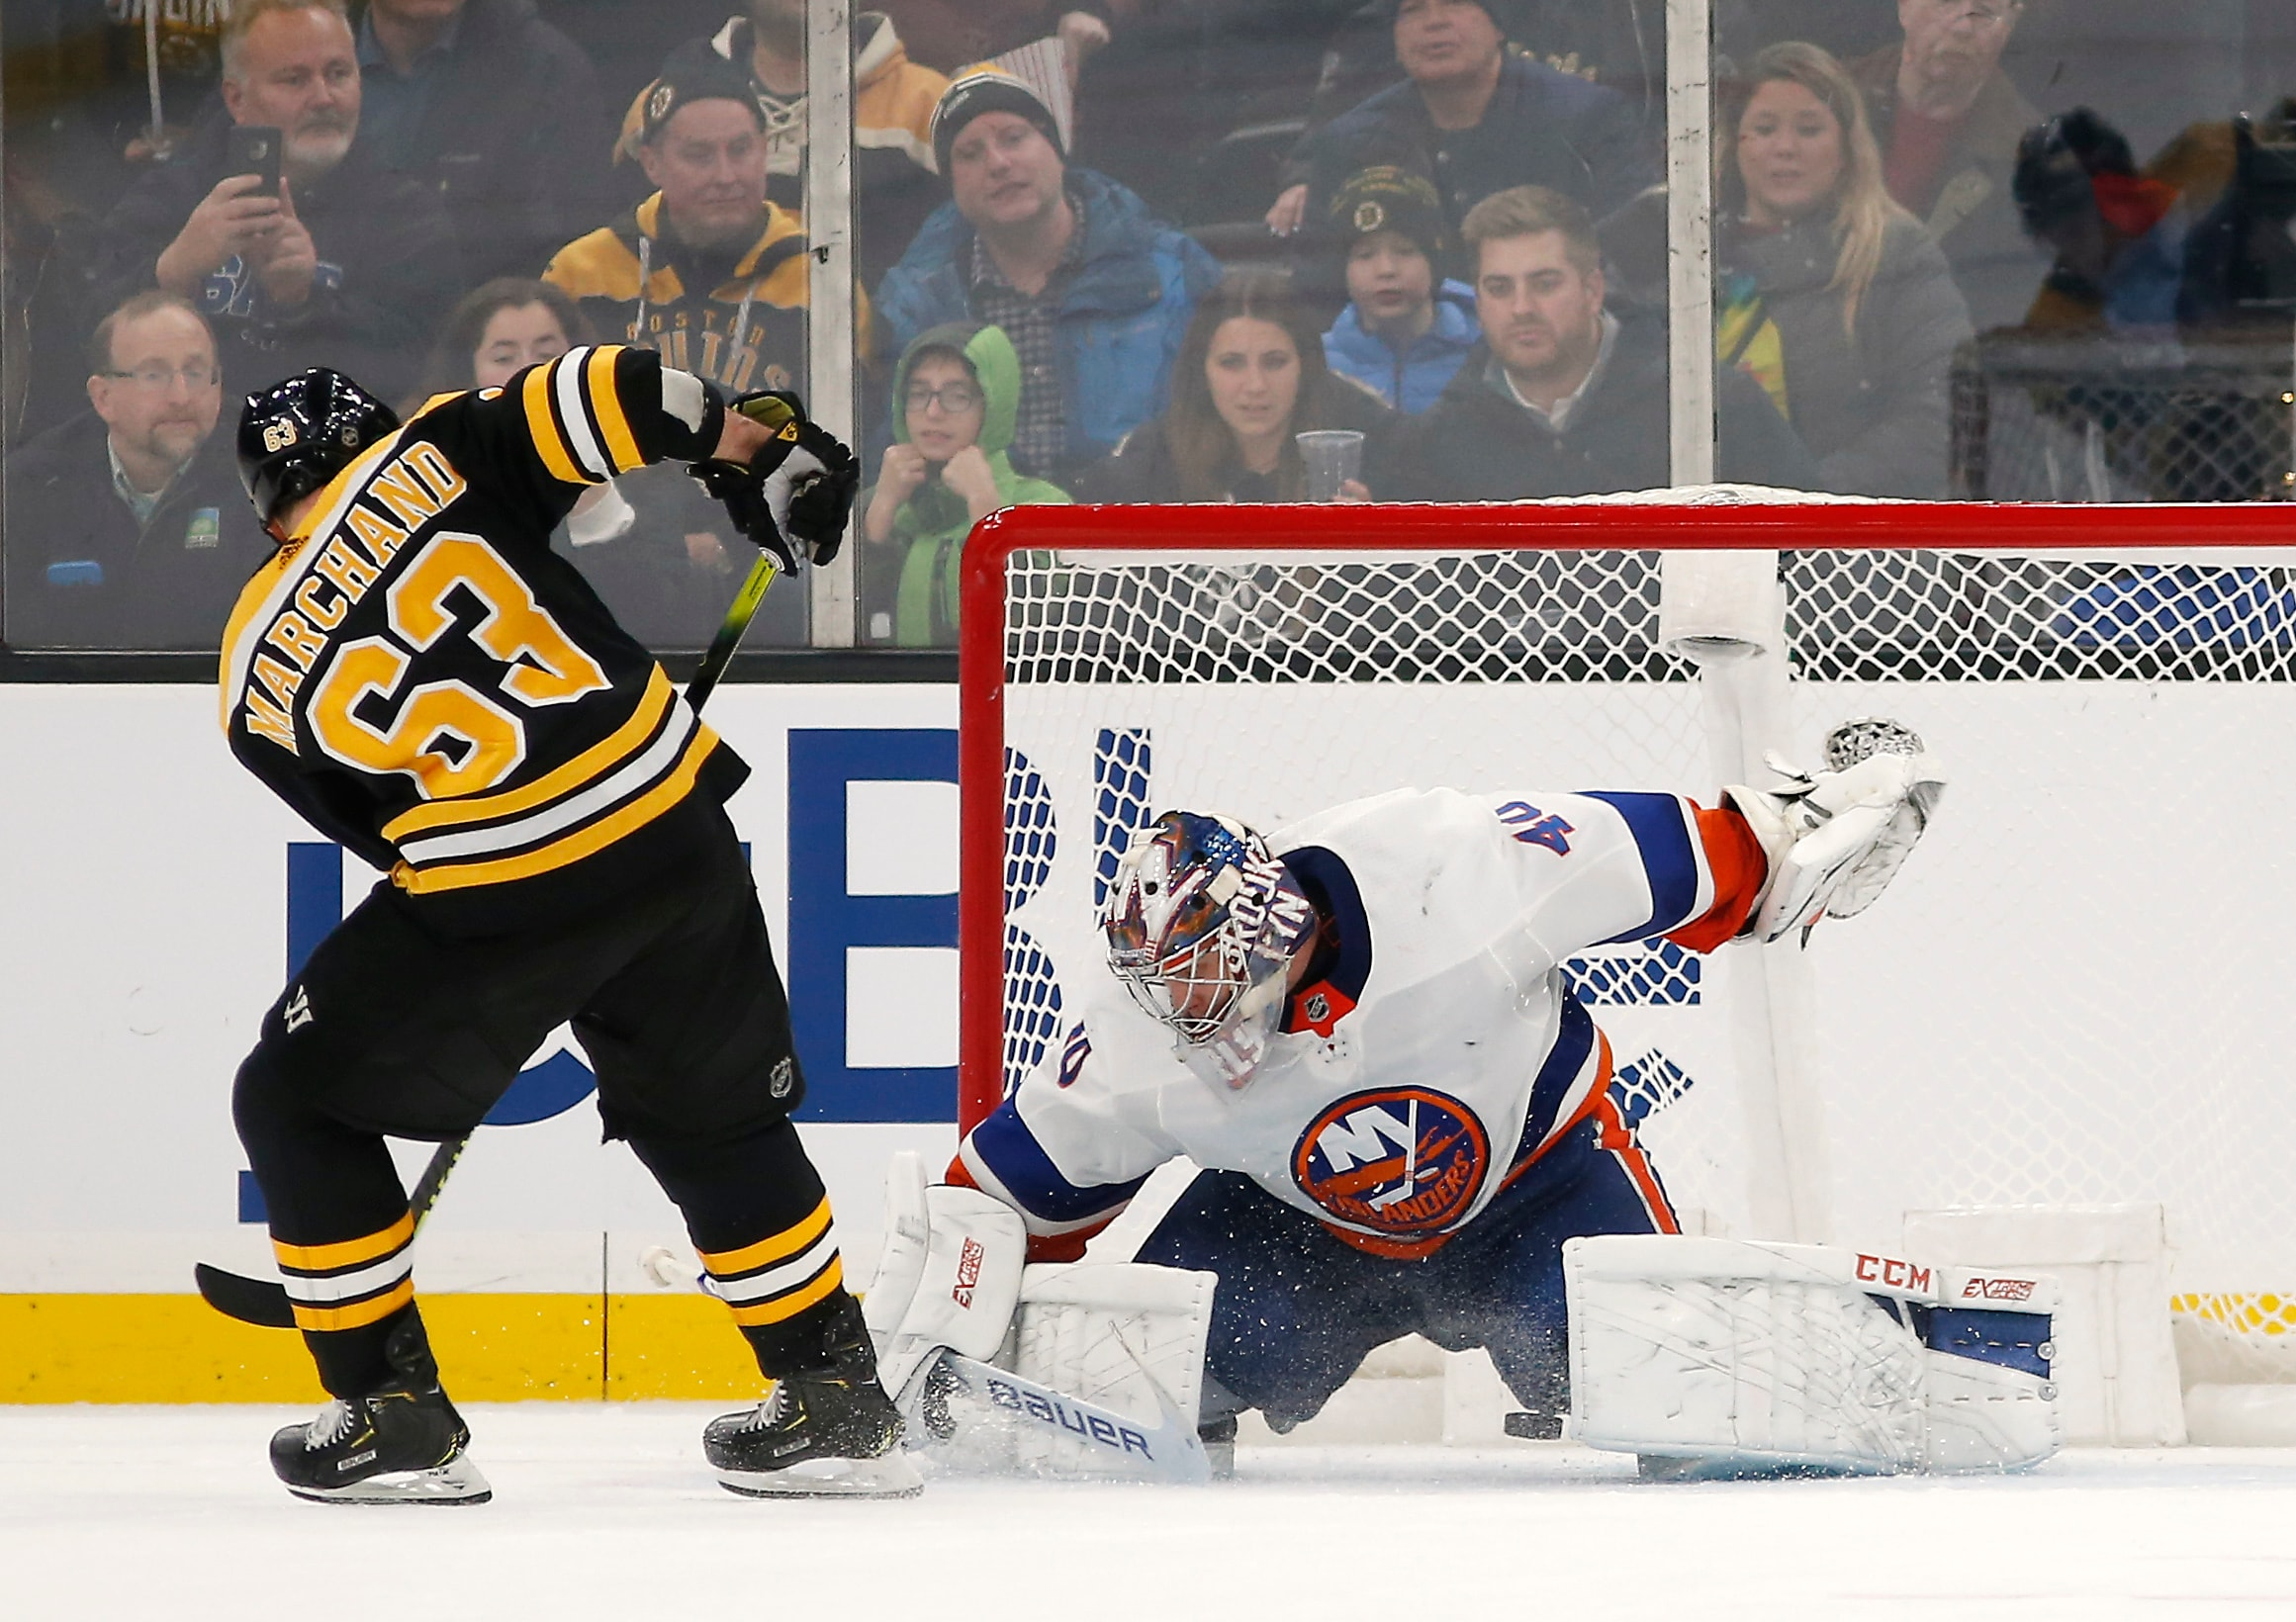 Bruins fall for 7th time in last 8 games